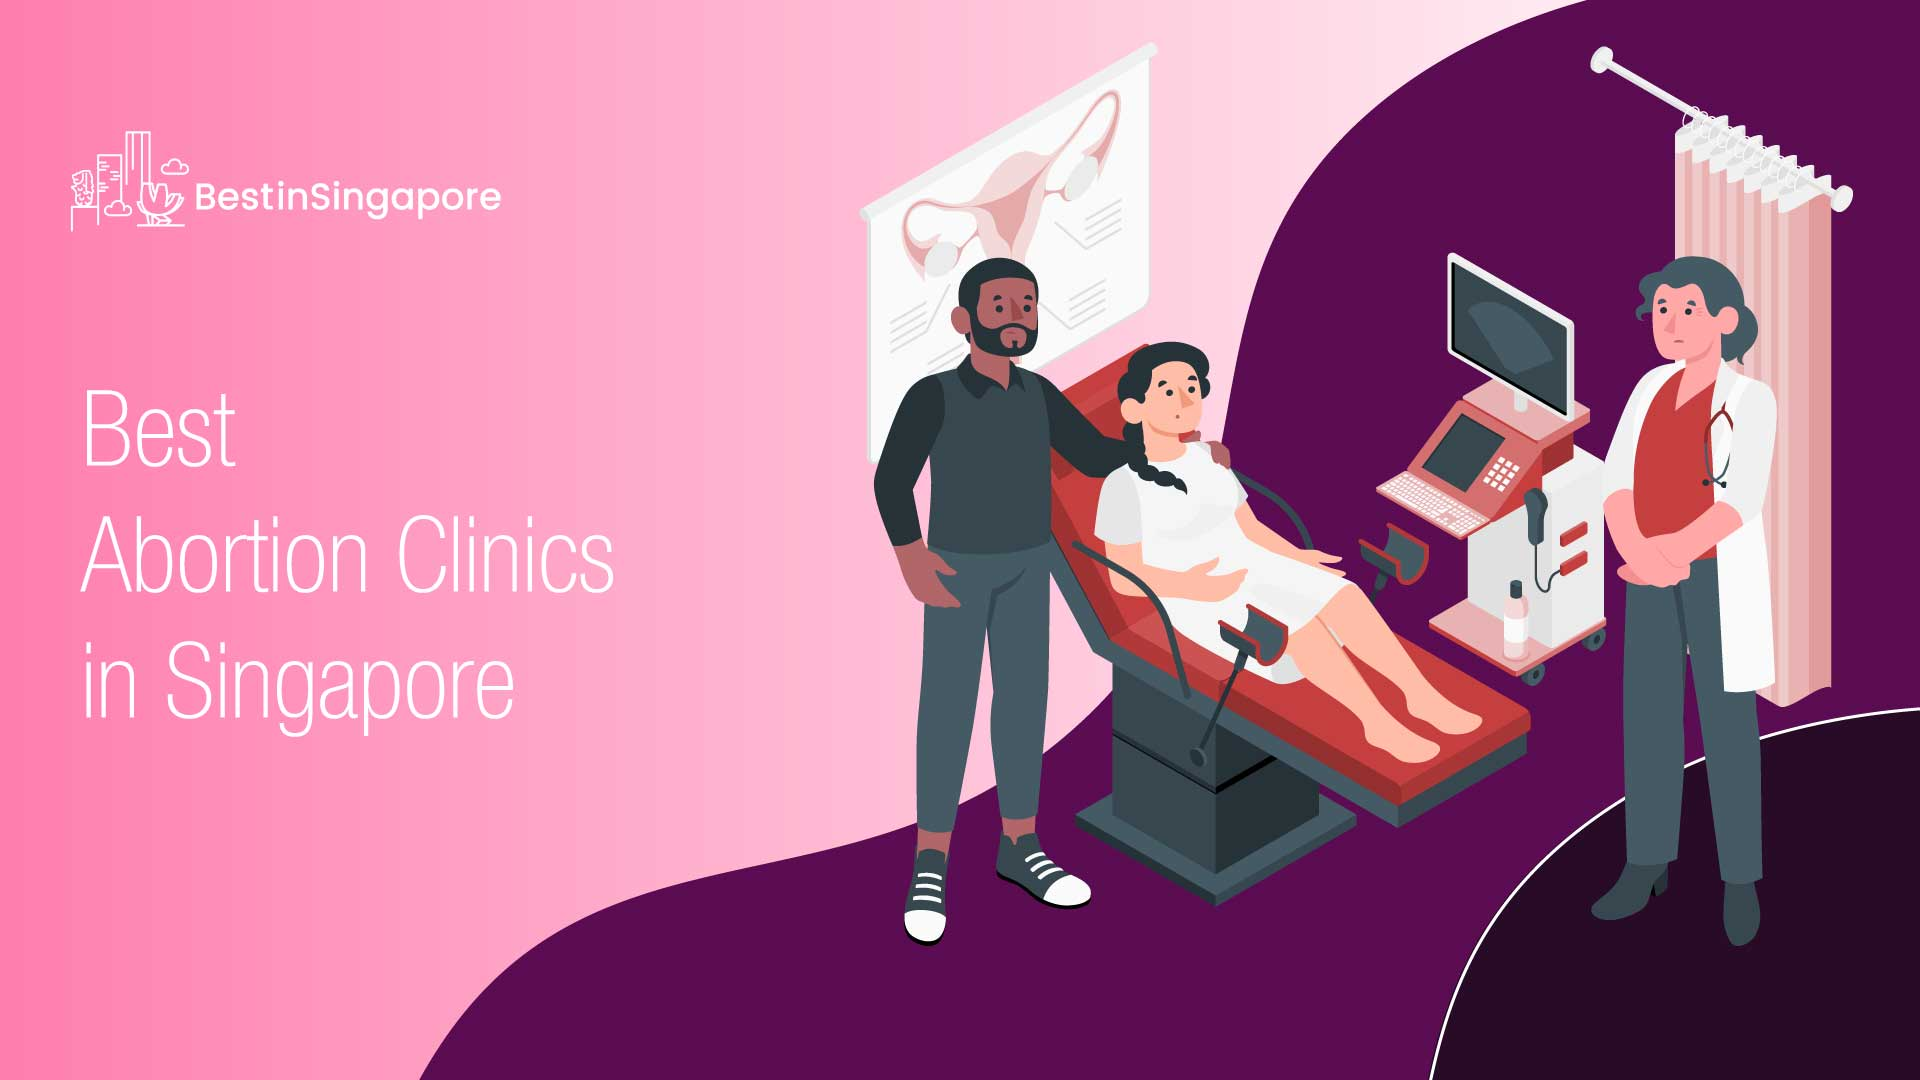 Best Abortion Clinics in Singapore